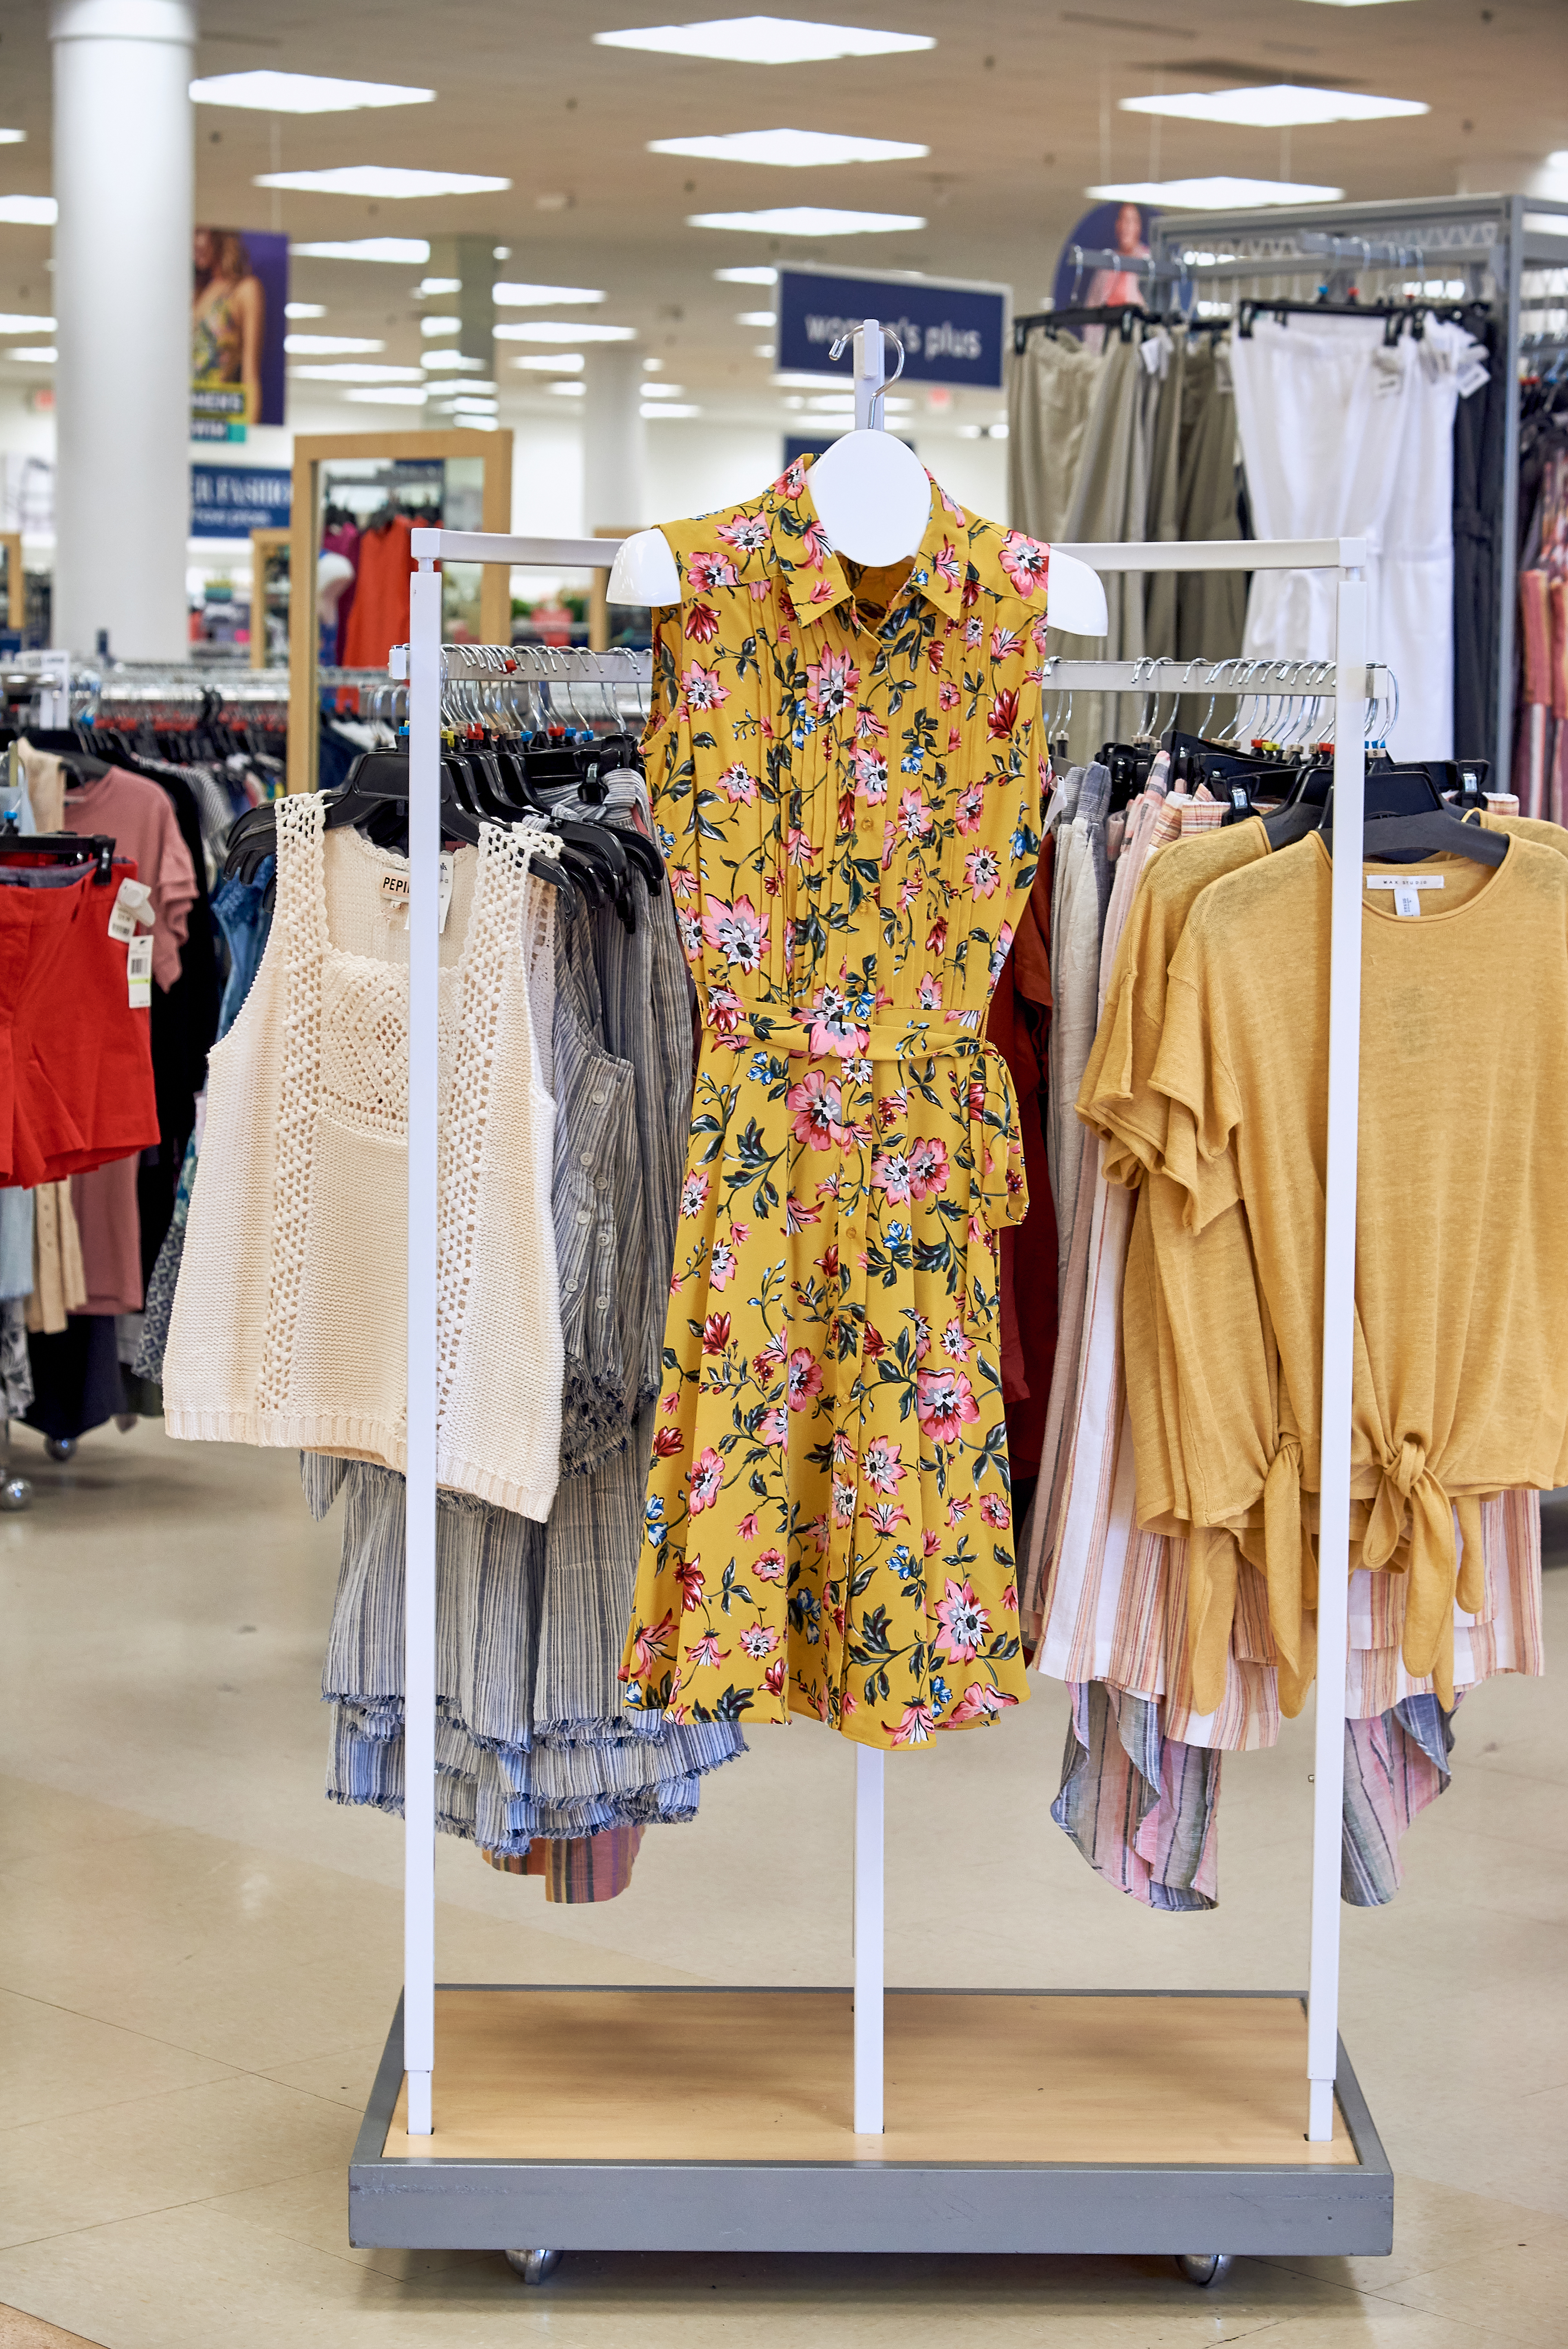 Clothing in the style section of Marshalls.